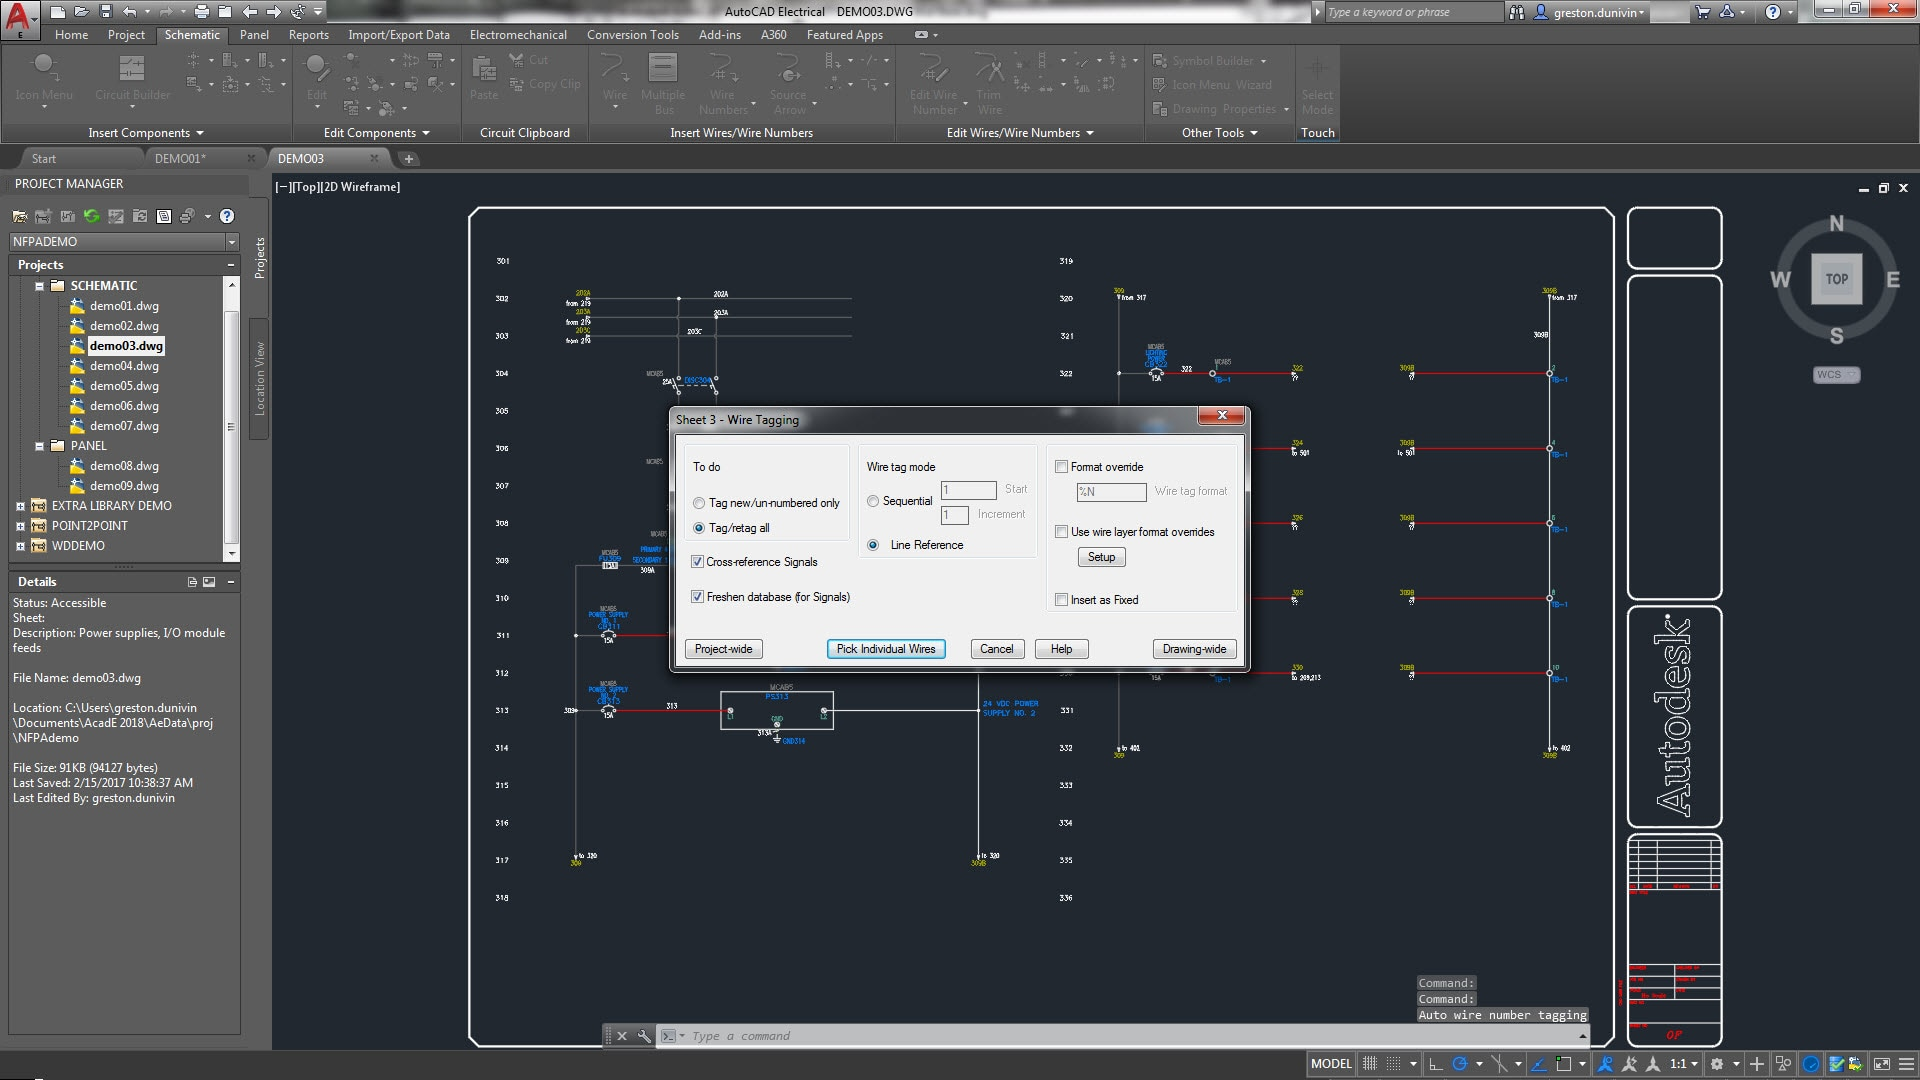 Autocad Electrical Toolset Design Software Home Run Wiring Schematic